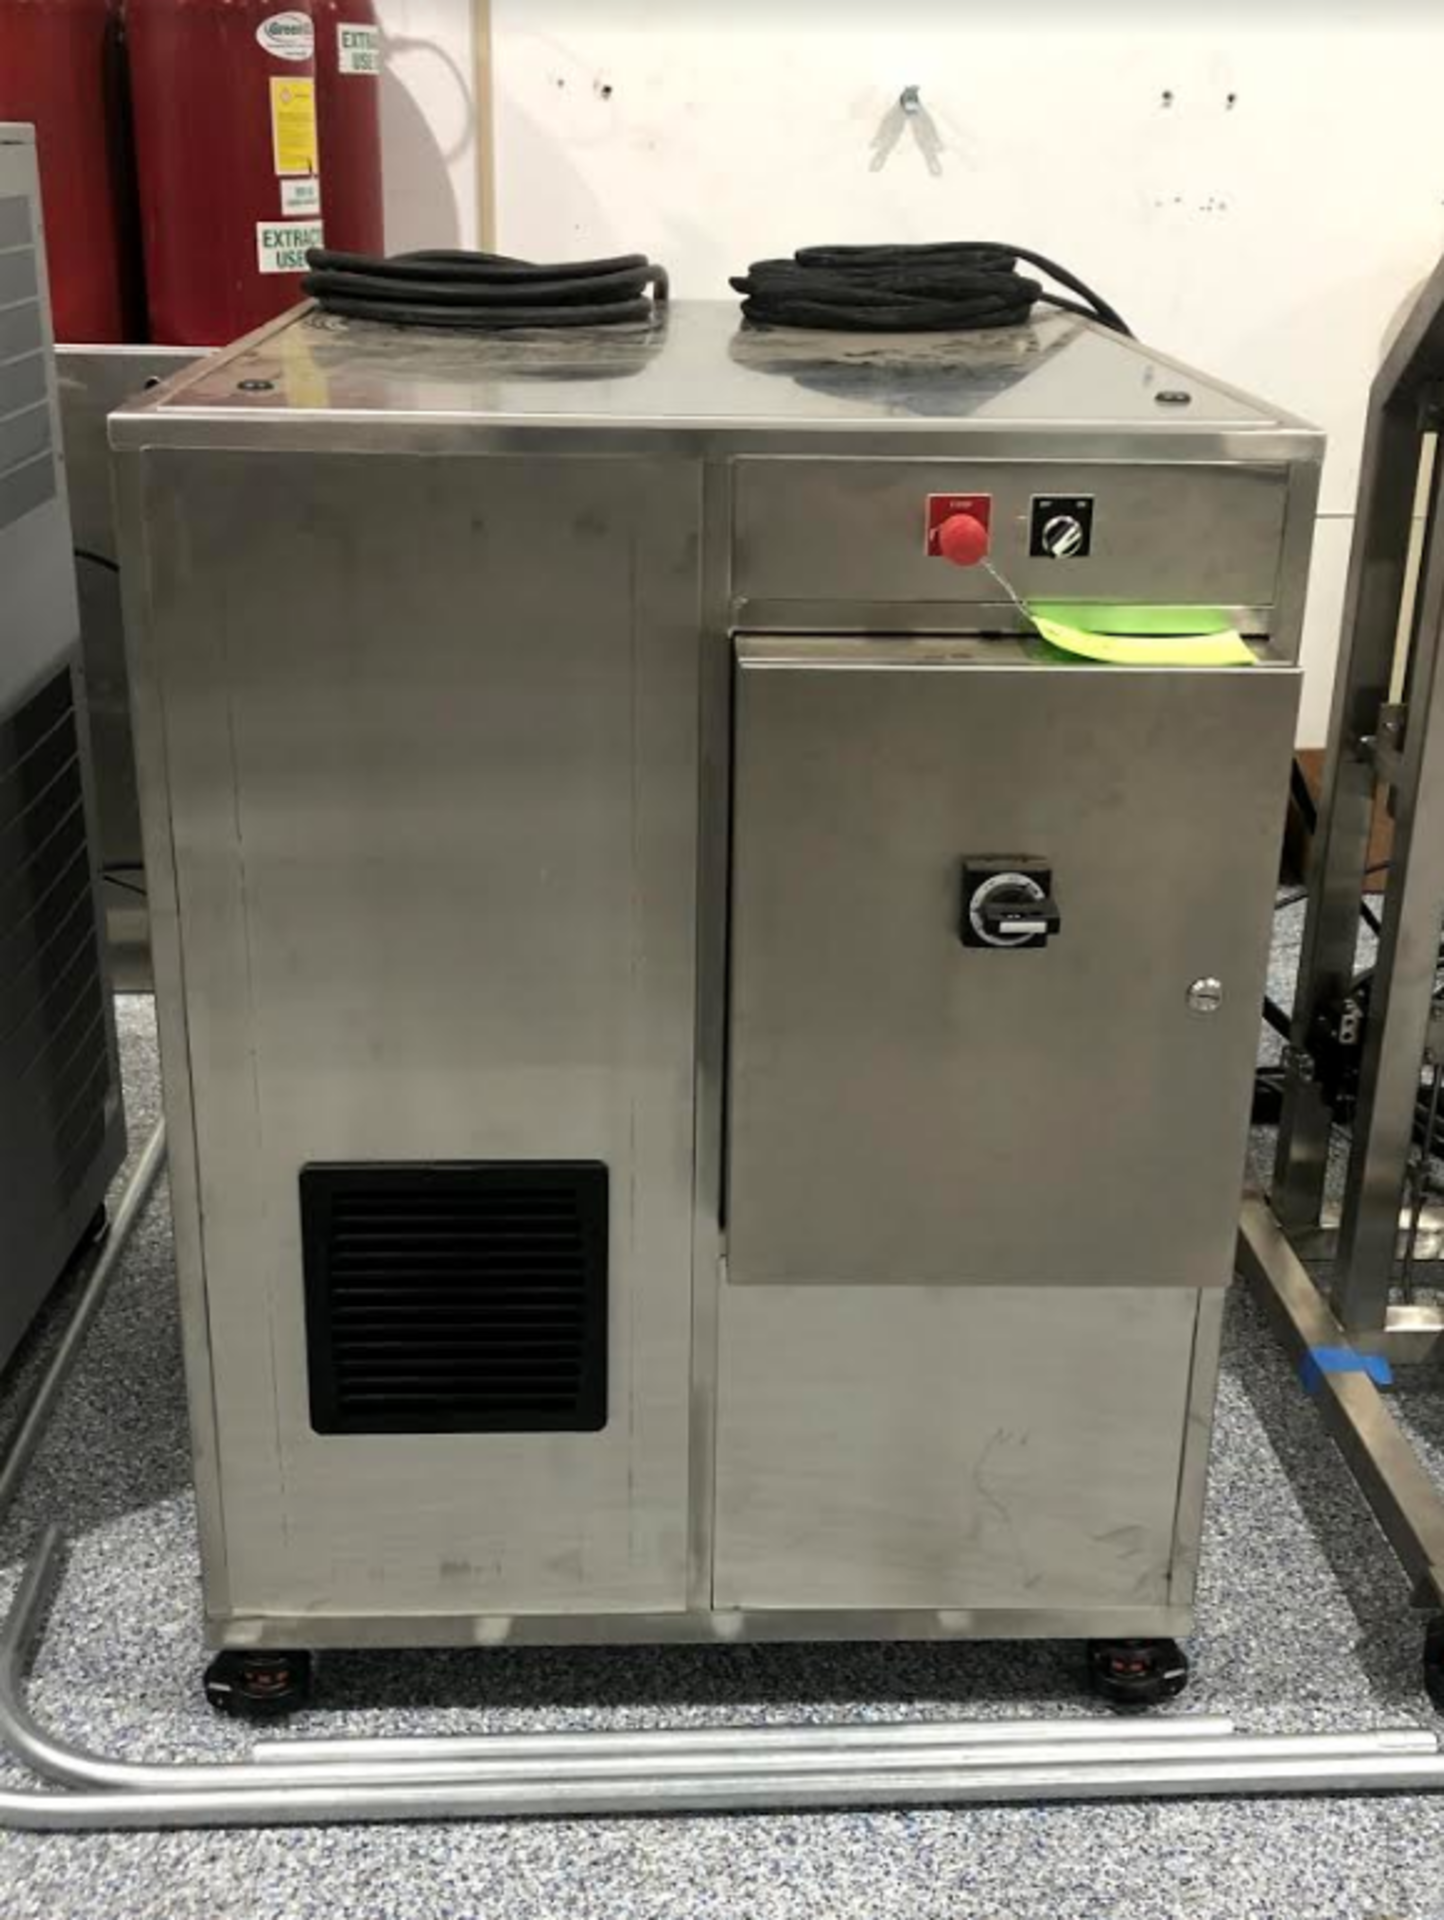 NEW Isolate Extraction Systems, Inc. (IES) Supercritical CO2 Extractor, Model# CDMH.5 - 2x-2f Hydrau - Image 2 of 5